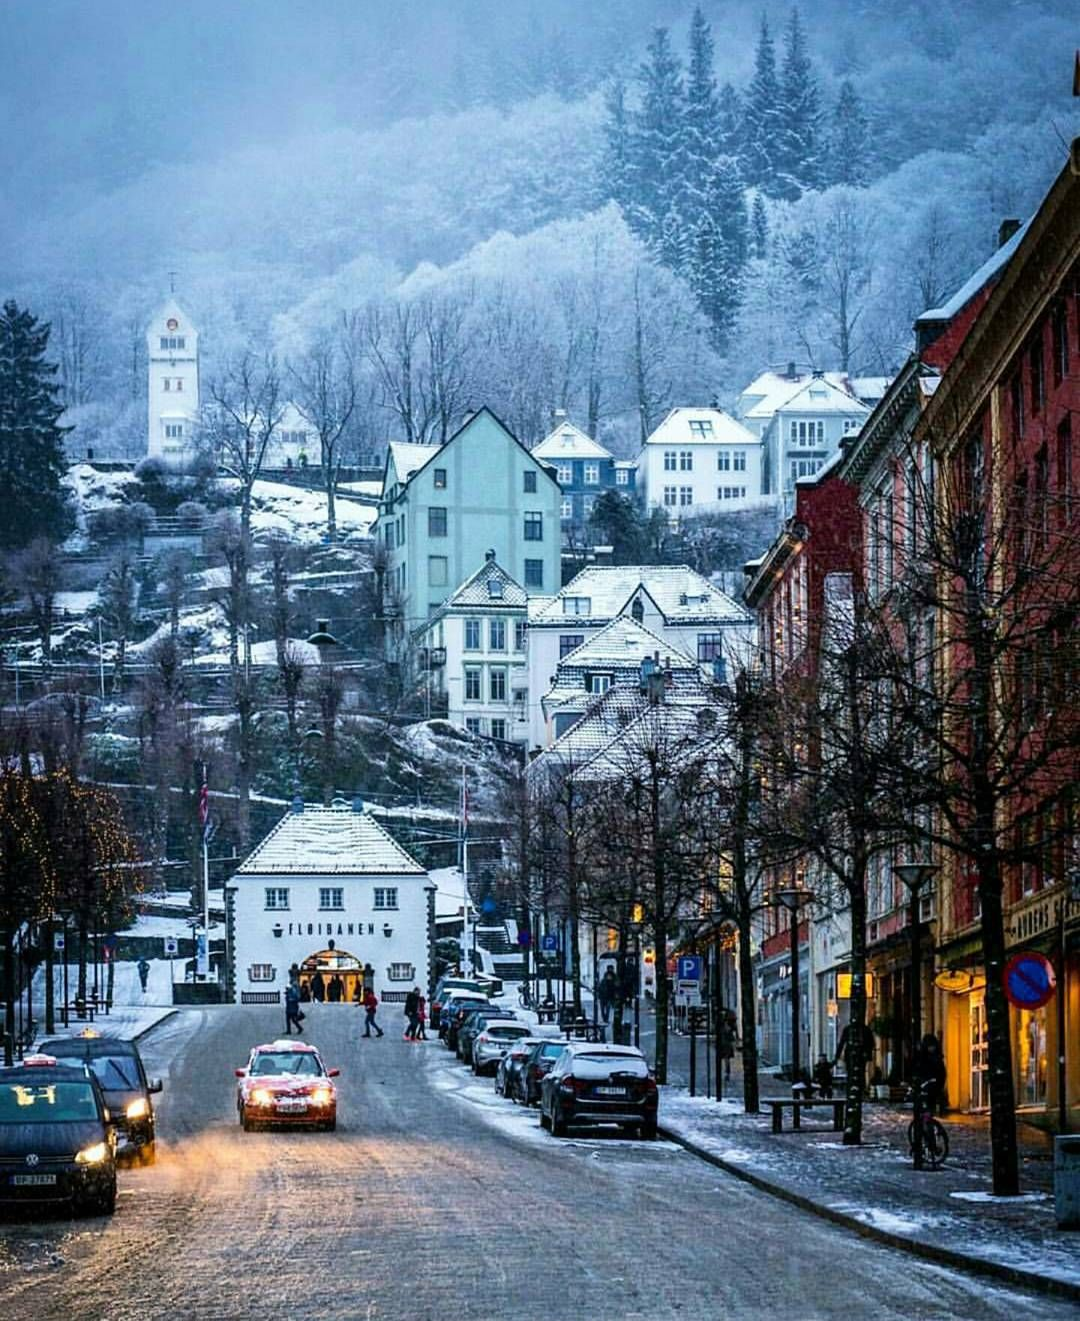 c9fb0cced36a Bergen Norway s Second City and the Gateway to the Fjords. Photo by   mittvestland on Instagram.